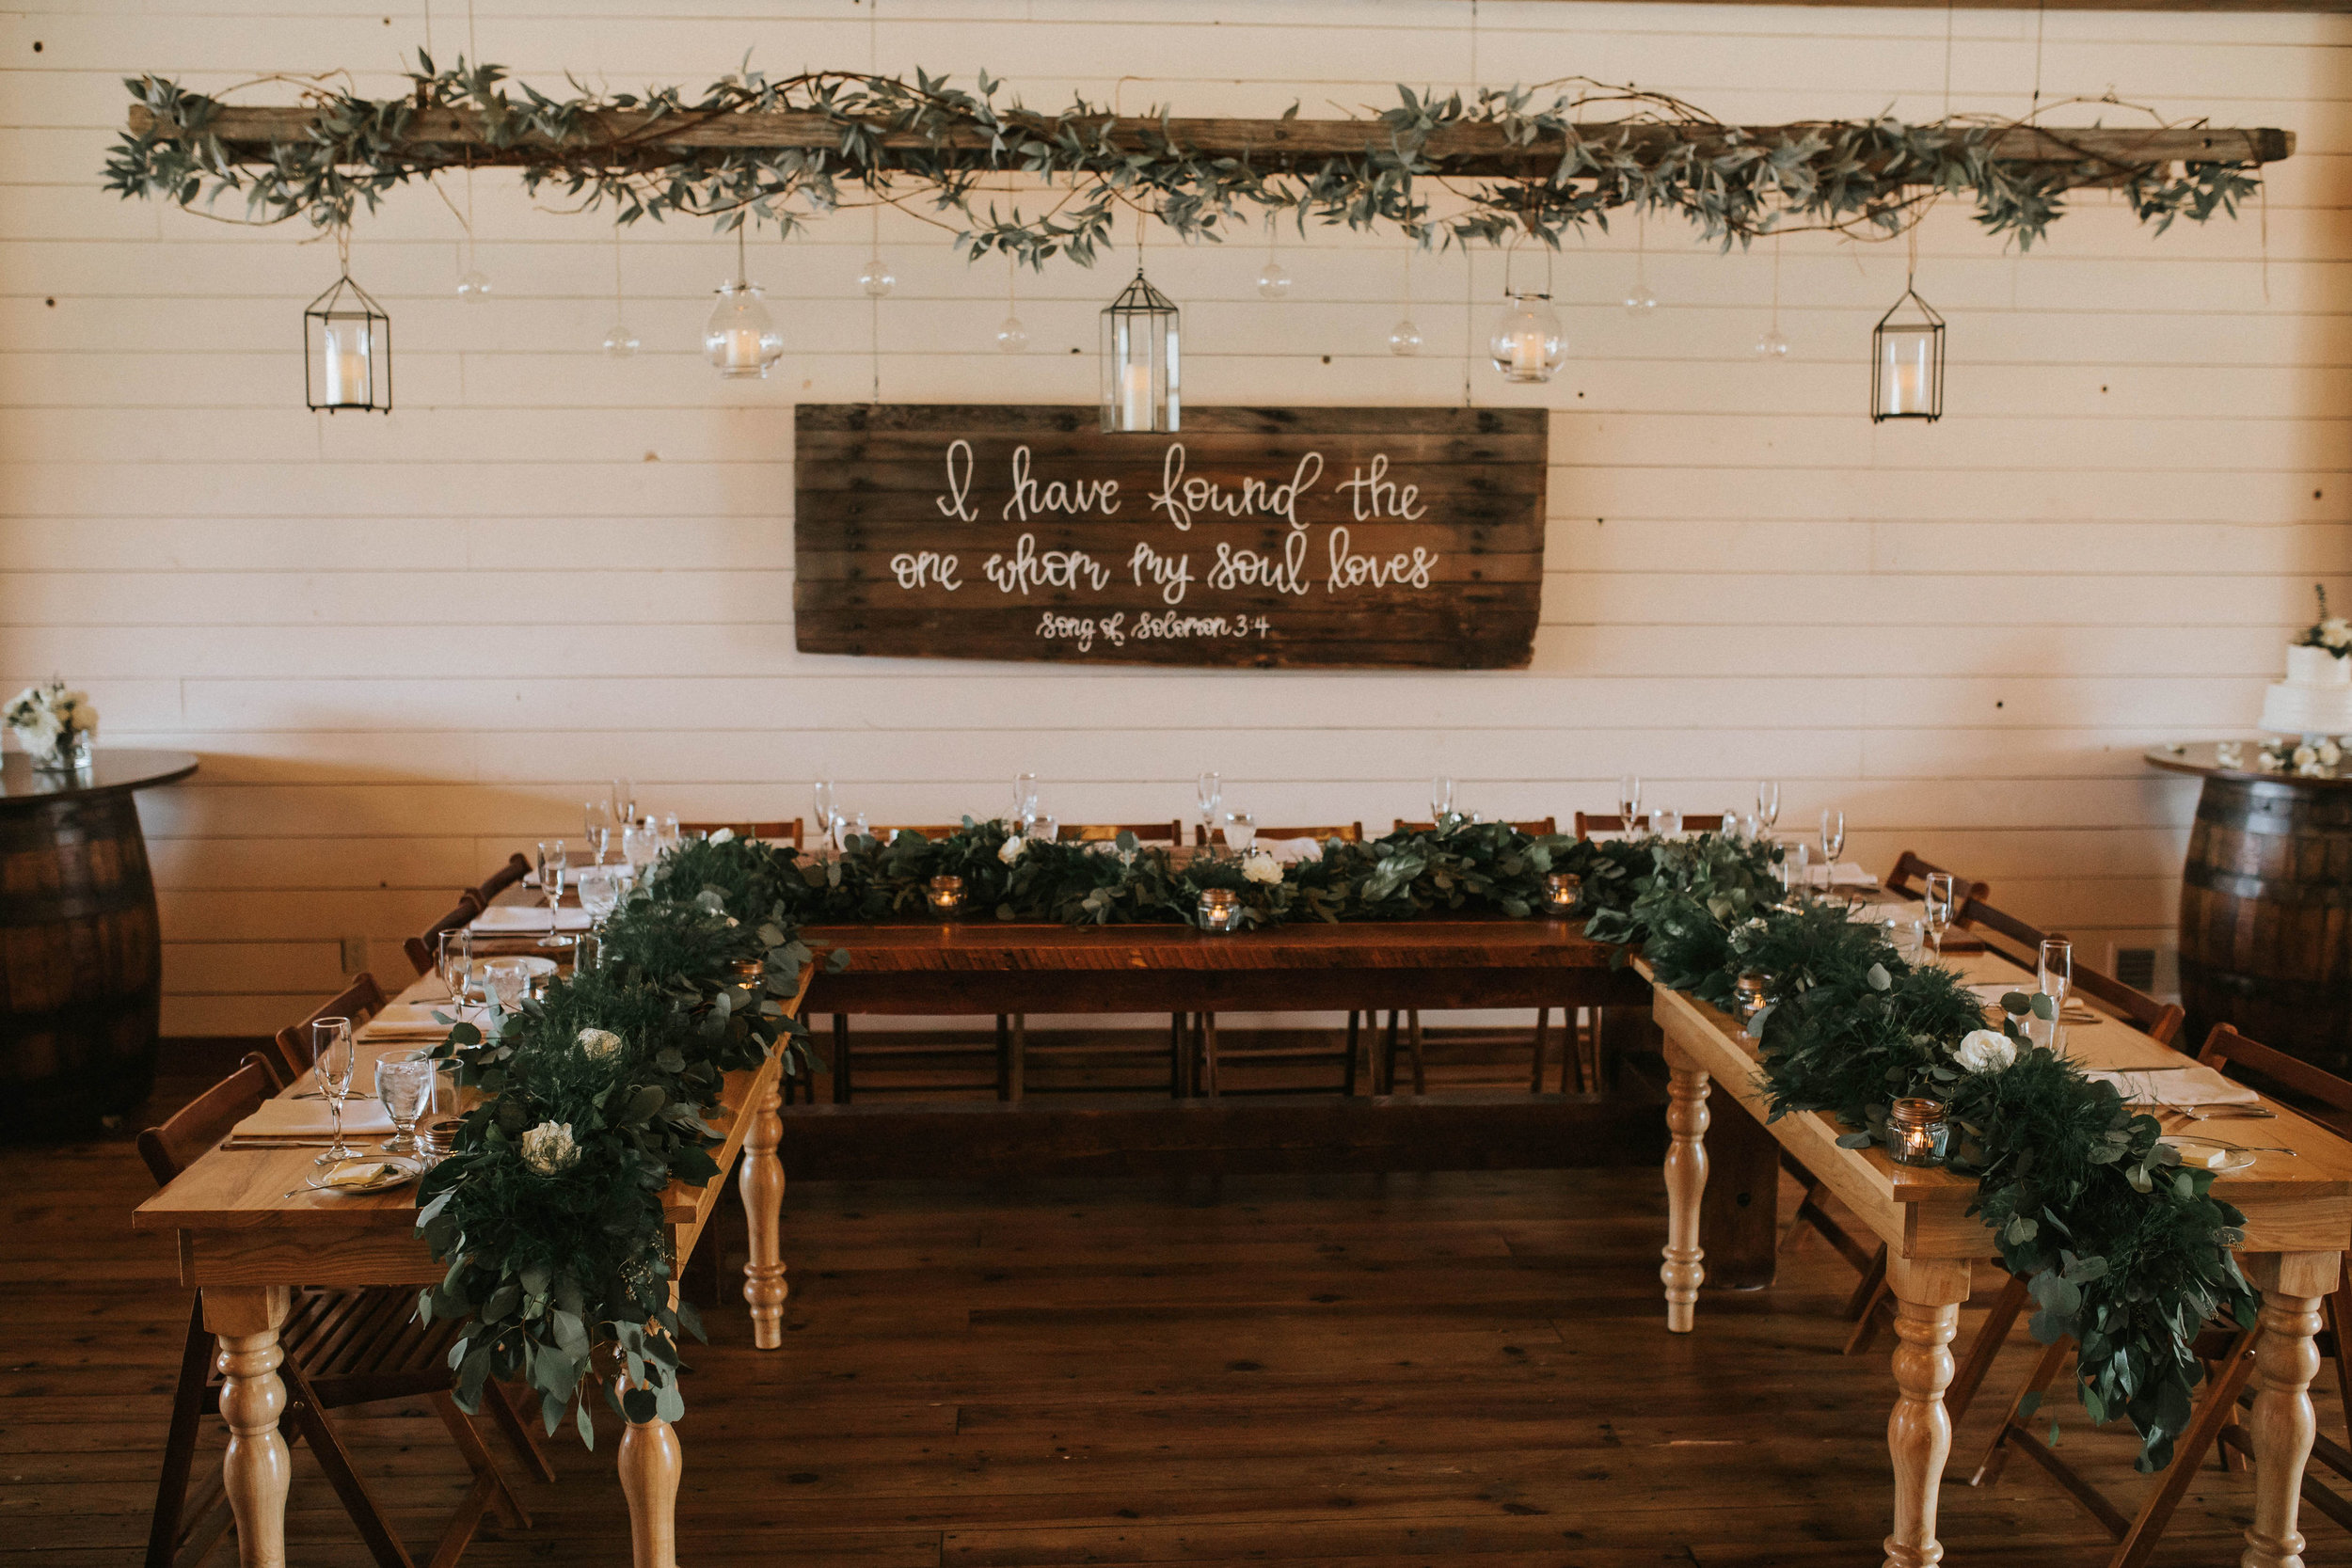 We added two tables to extend the head table to create a 'U' shape to accommodate the 14 person bridal party.